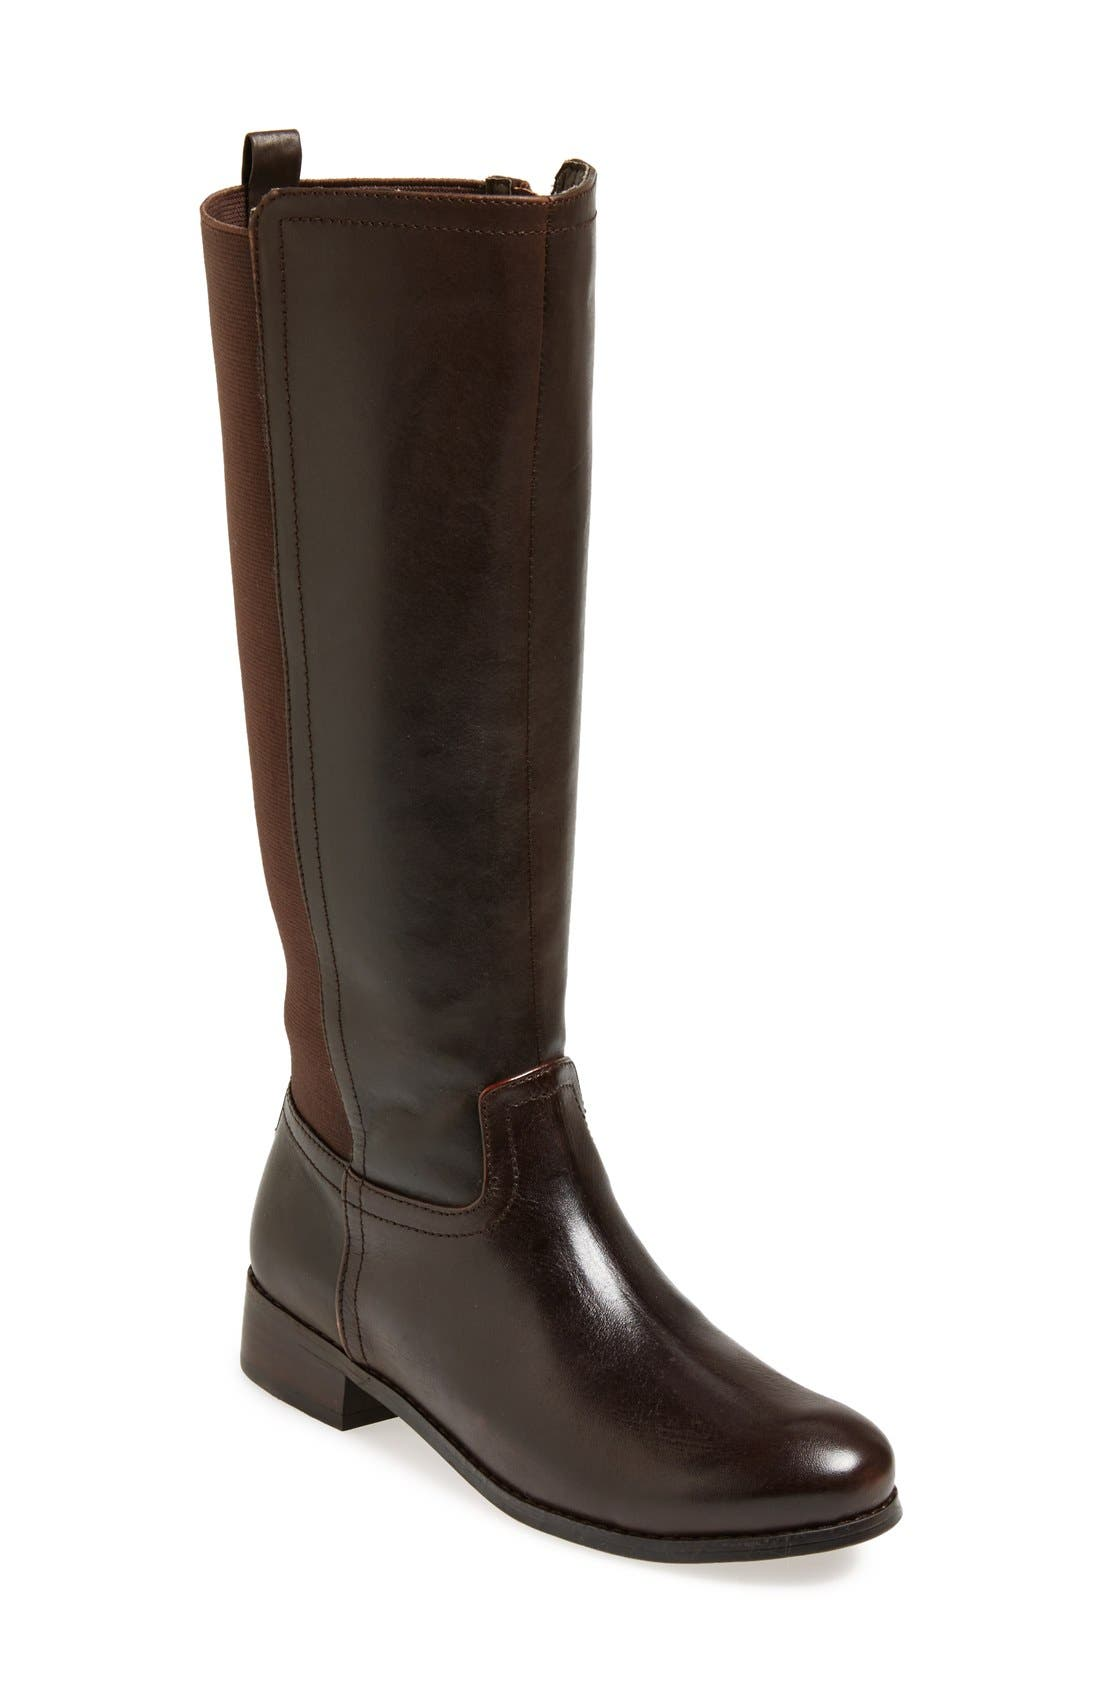 Alternate Image 1 Selected - Trotters 'Signature Lucia' Leather Riding Boot (Women)